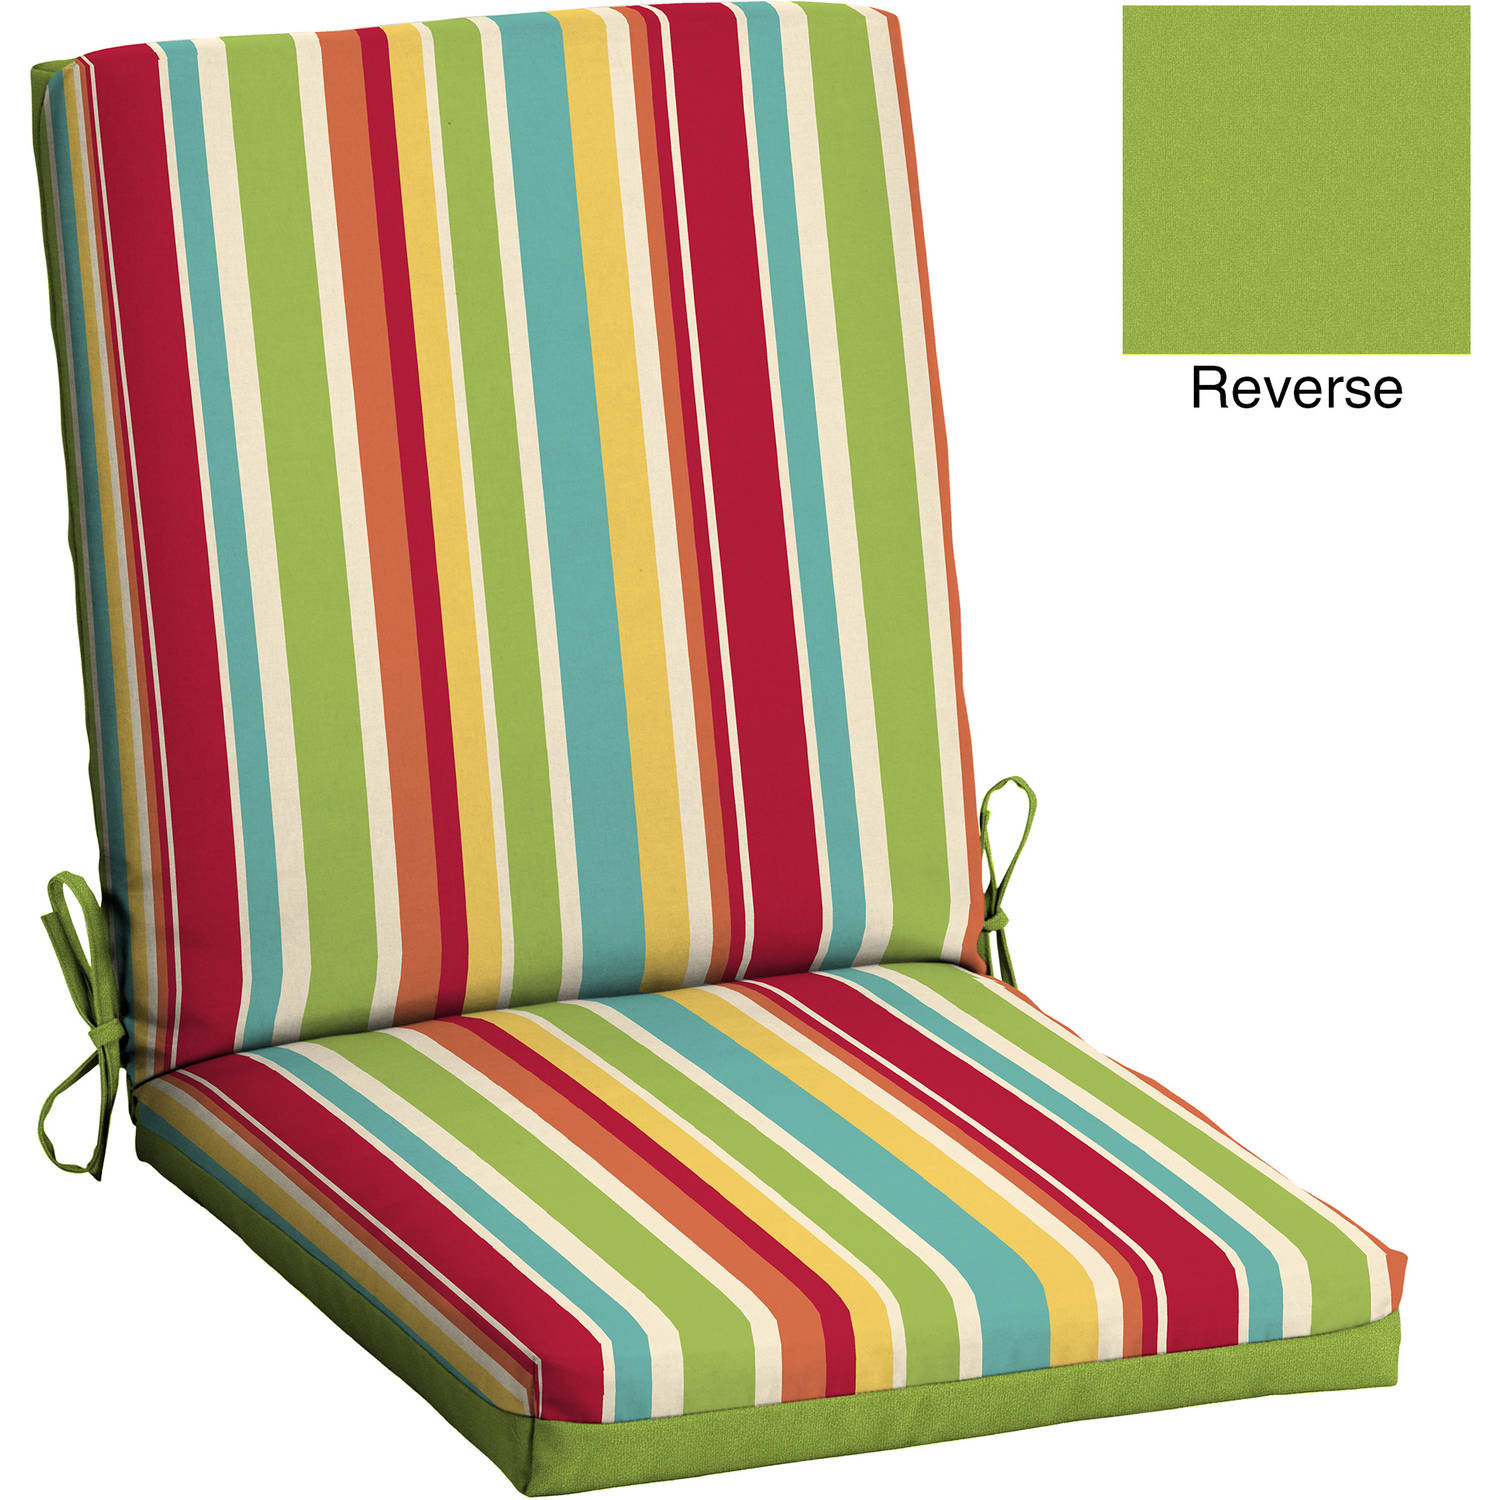 Mainstays Outdoor Patio Reversible Dining Chair Cushion, Multi Stripe